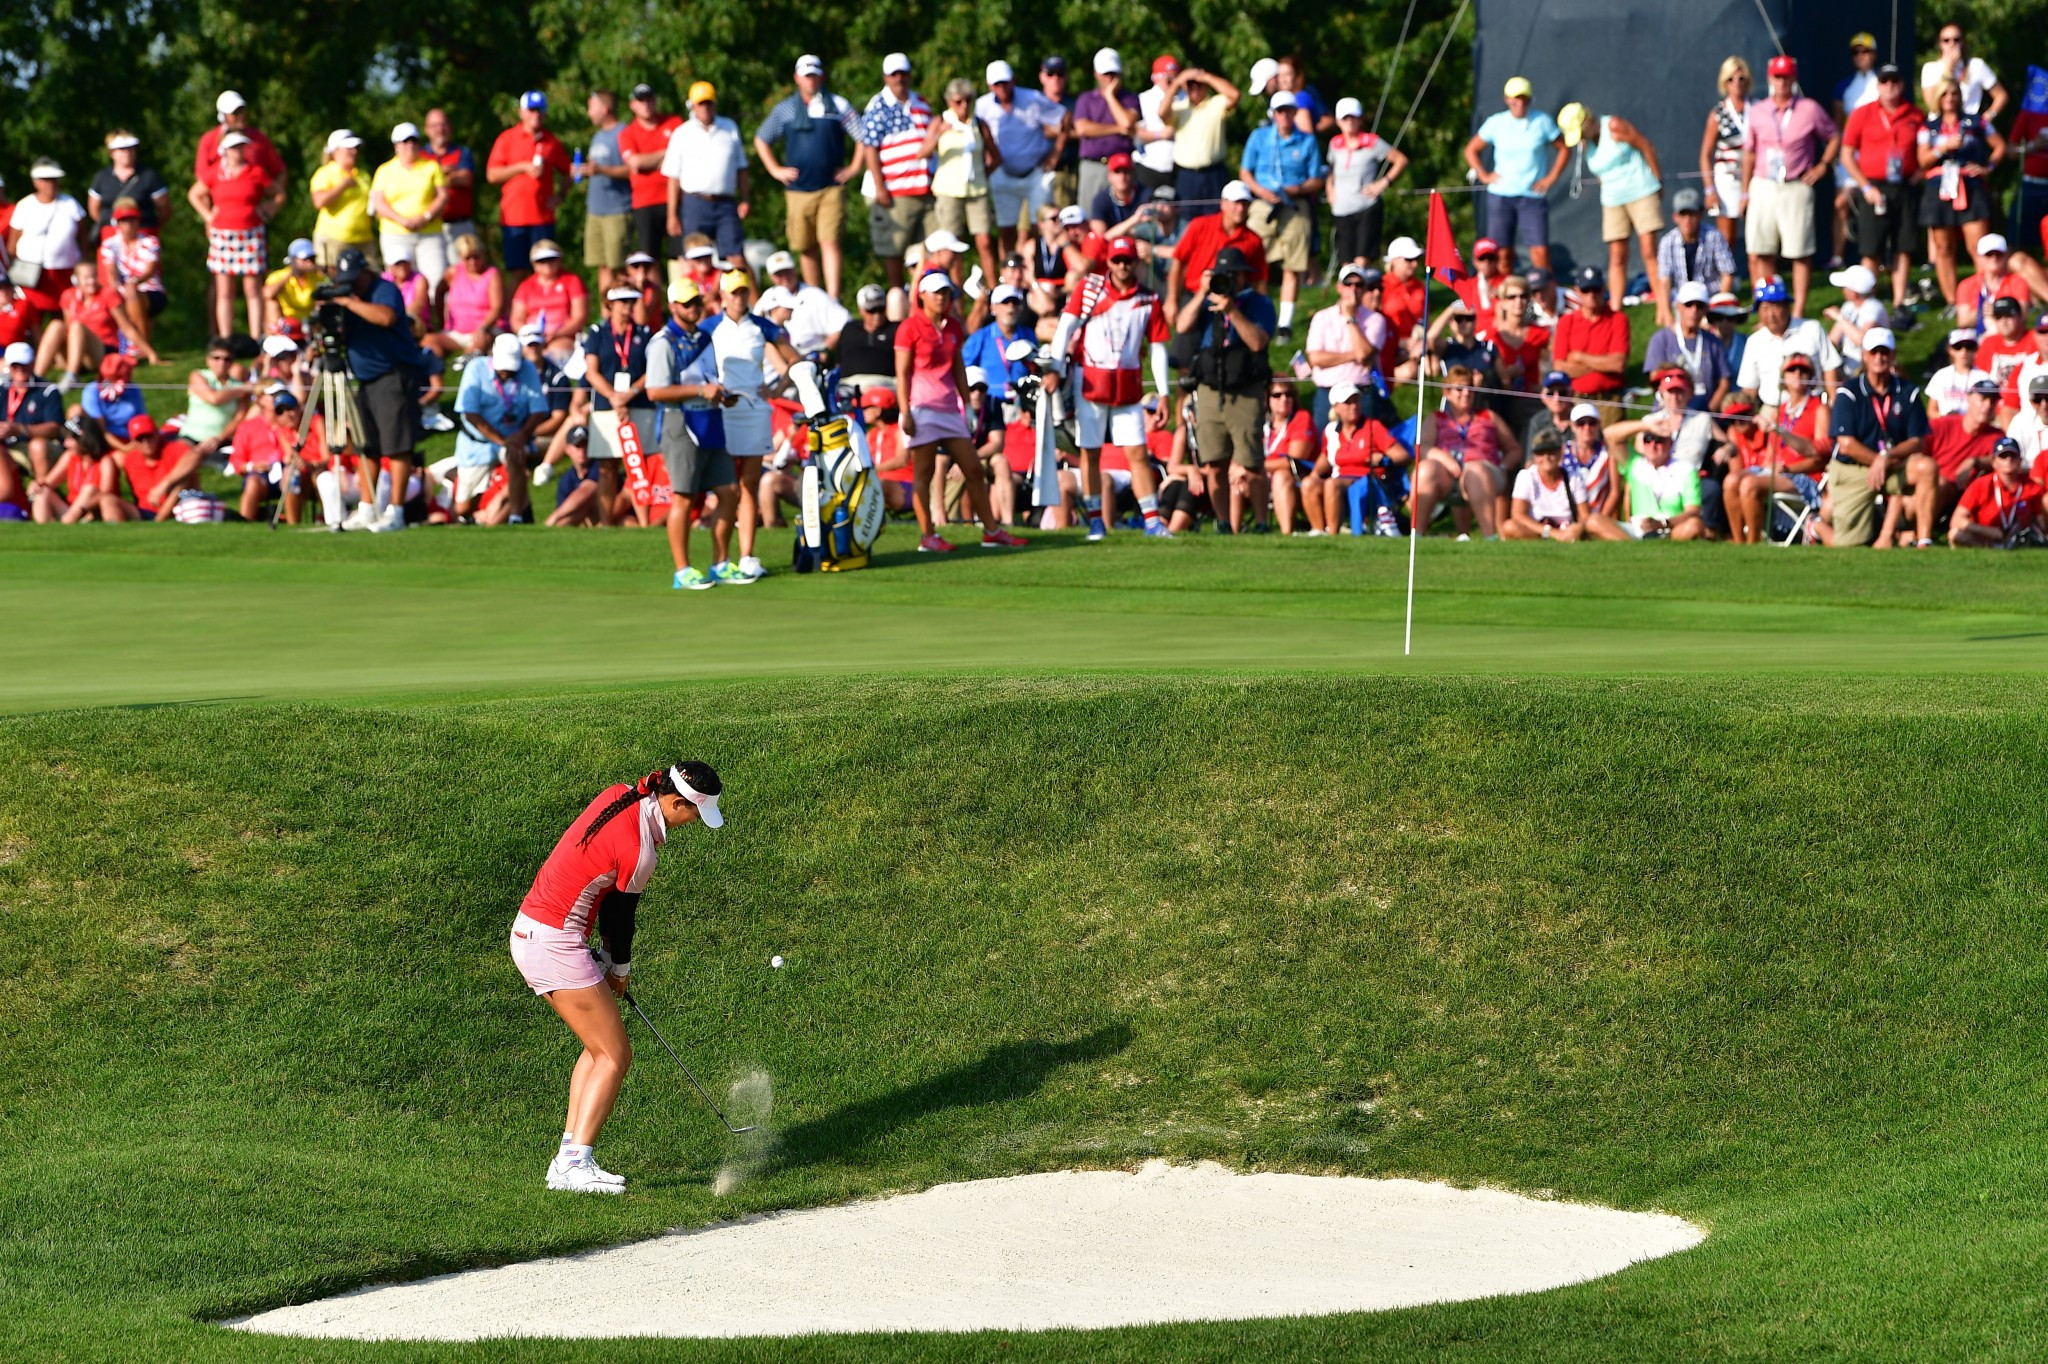 US enjoy dominant afternoon to take lead at Solheim Cup